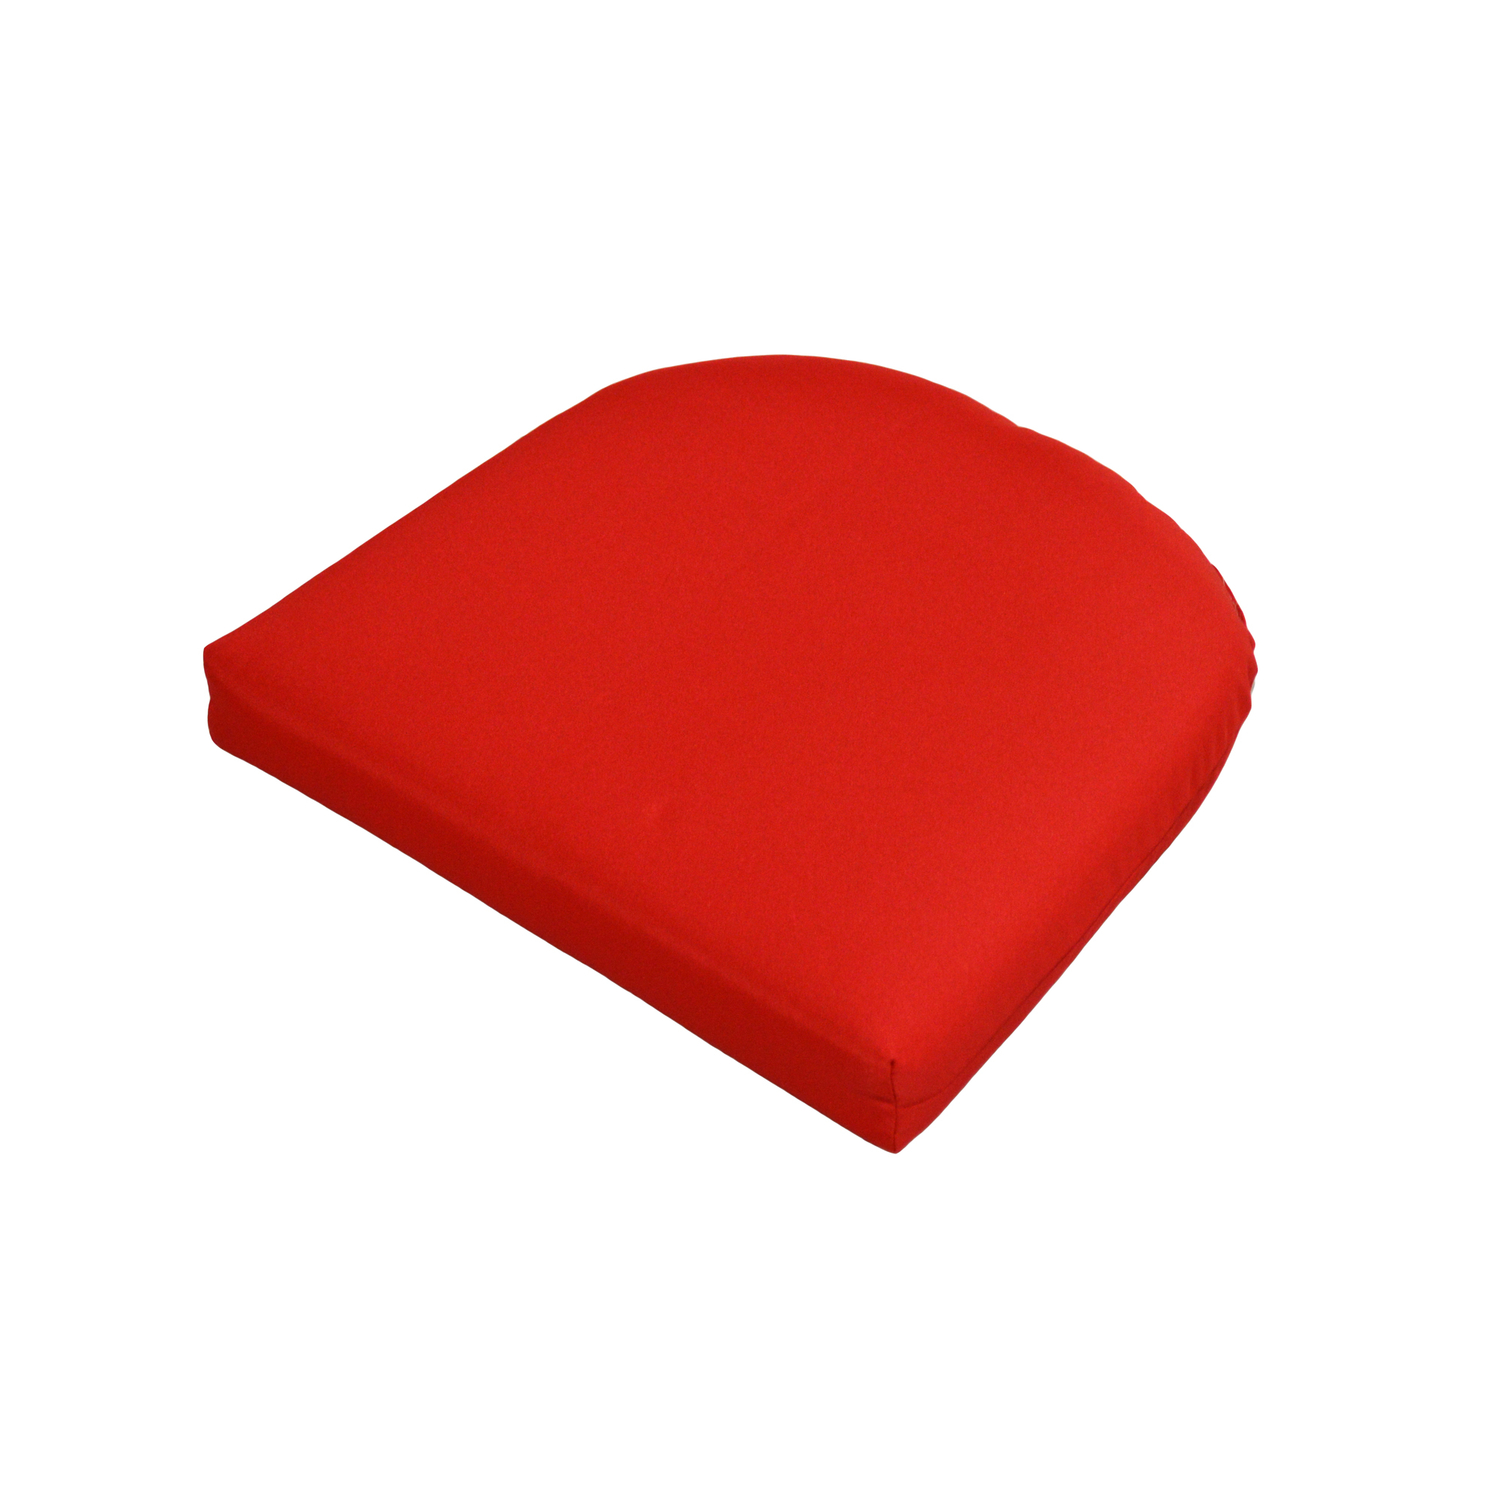 Casual Cushion  Polyester  2.5 in. Red  Seating Cushion  18 in. 18 in.